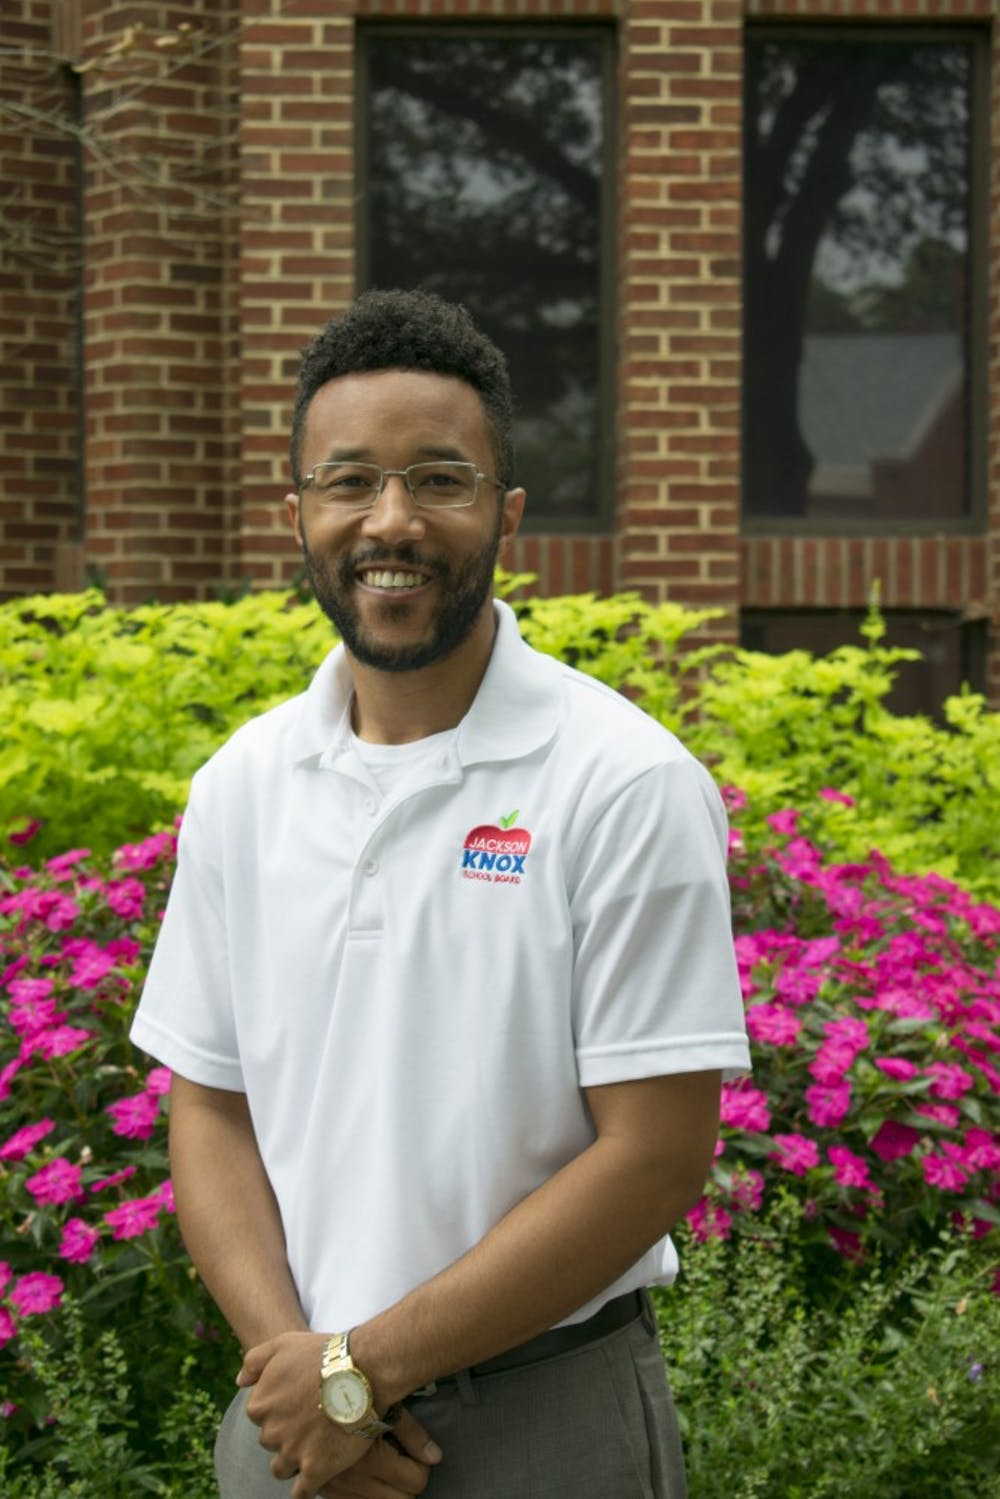 <p>Jackson Knox, 28, serves as the outreach coordinator at the SpiderShop. He is also running for a seat on the Henrico County School Board.&nbsp;</p>